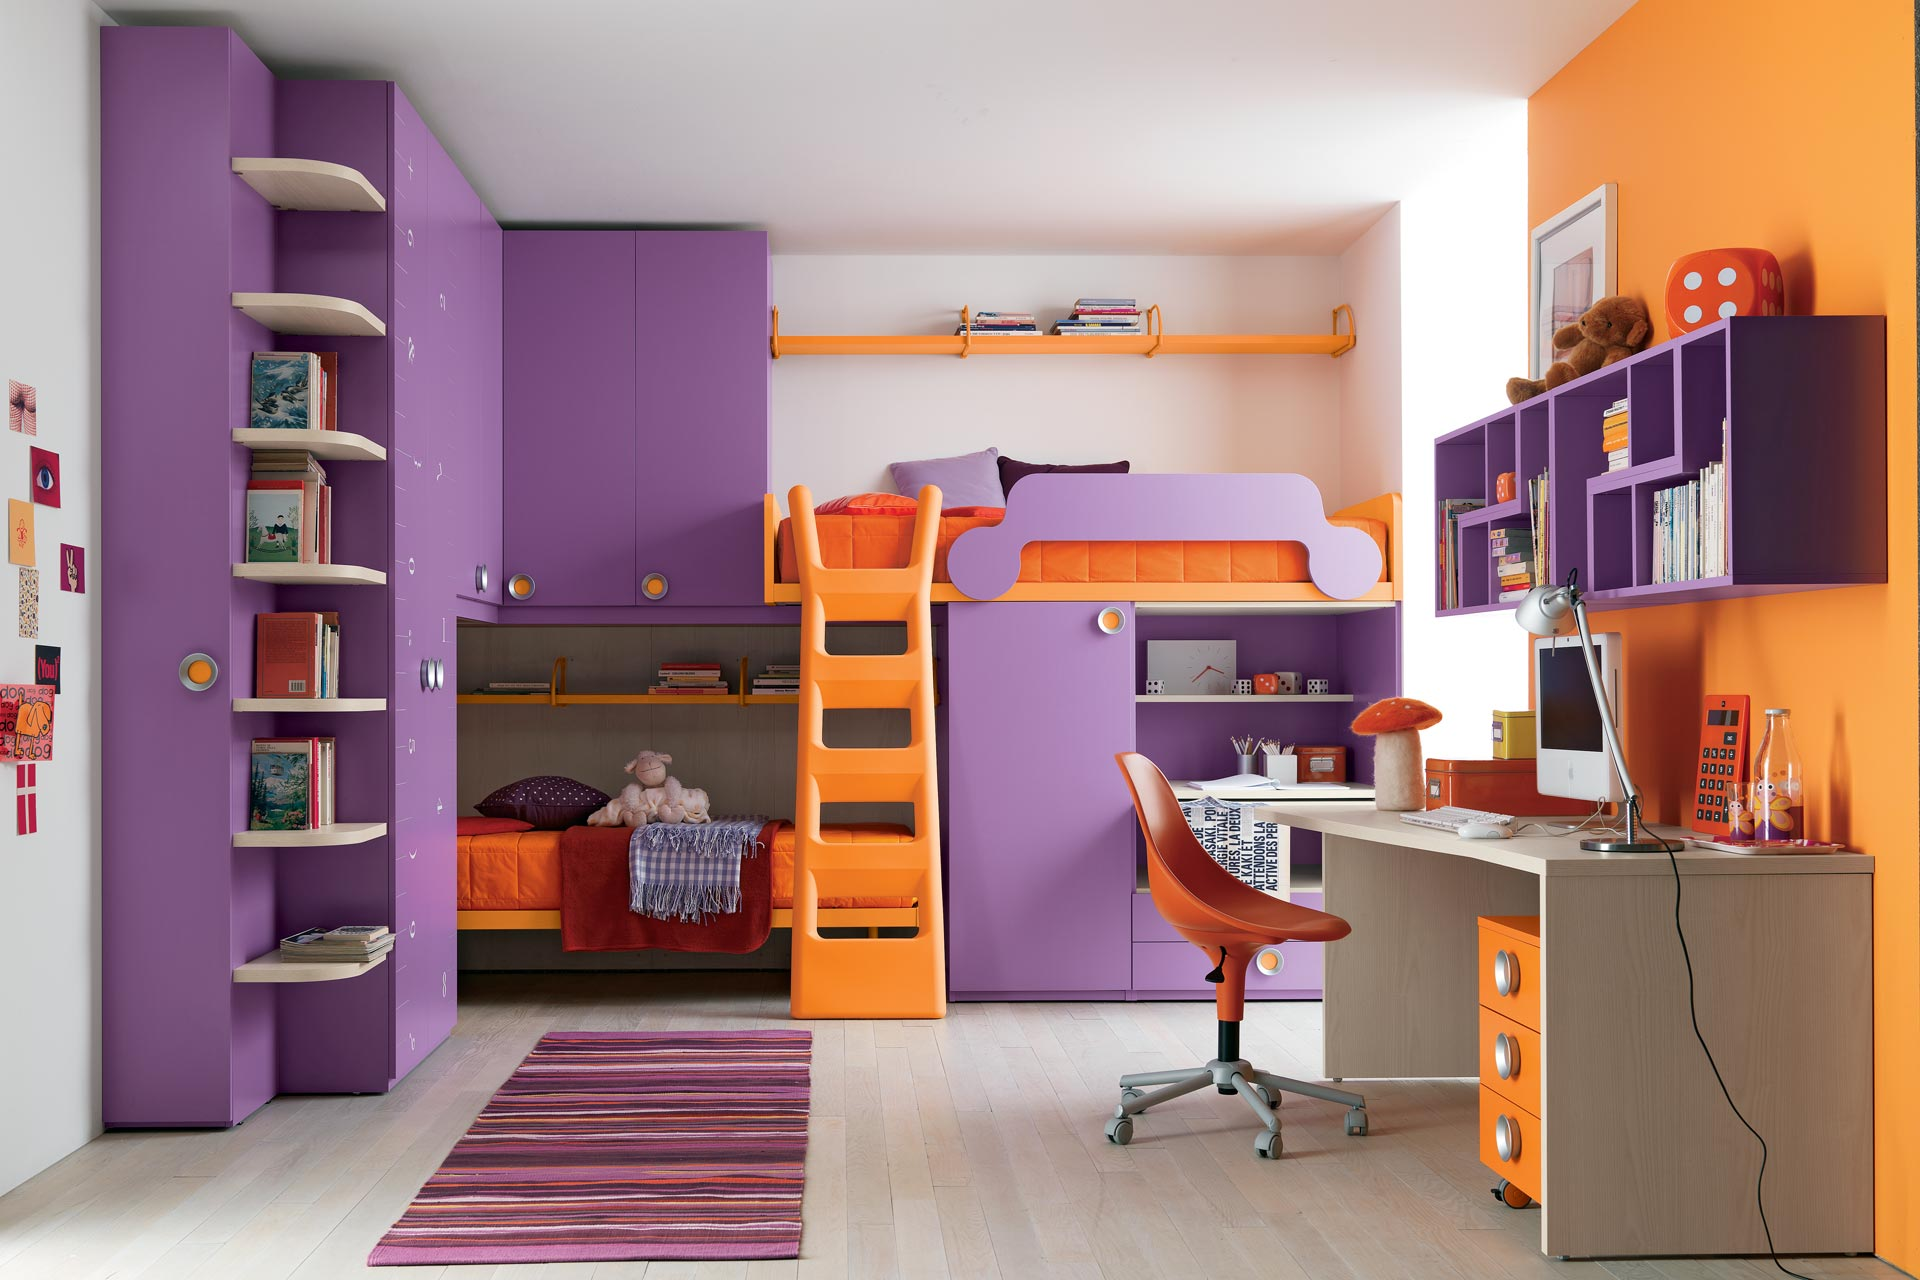 Great Bunk Bed Ideas for Small Rooms 1920 x 1280 · 232 kB · jpeg